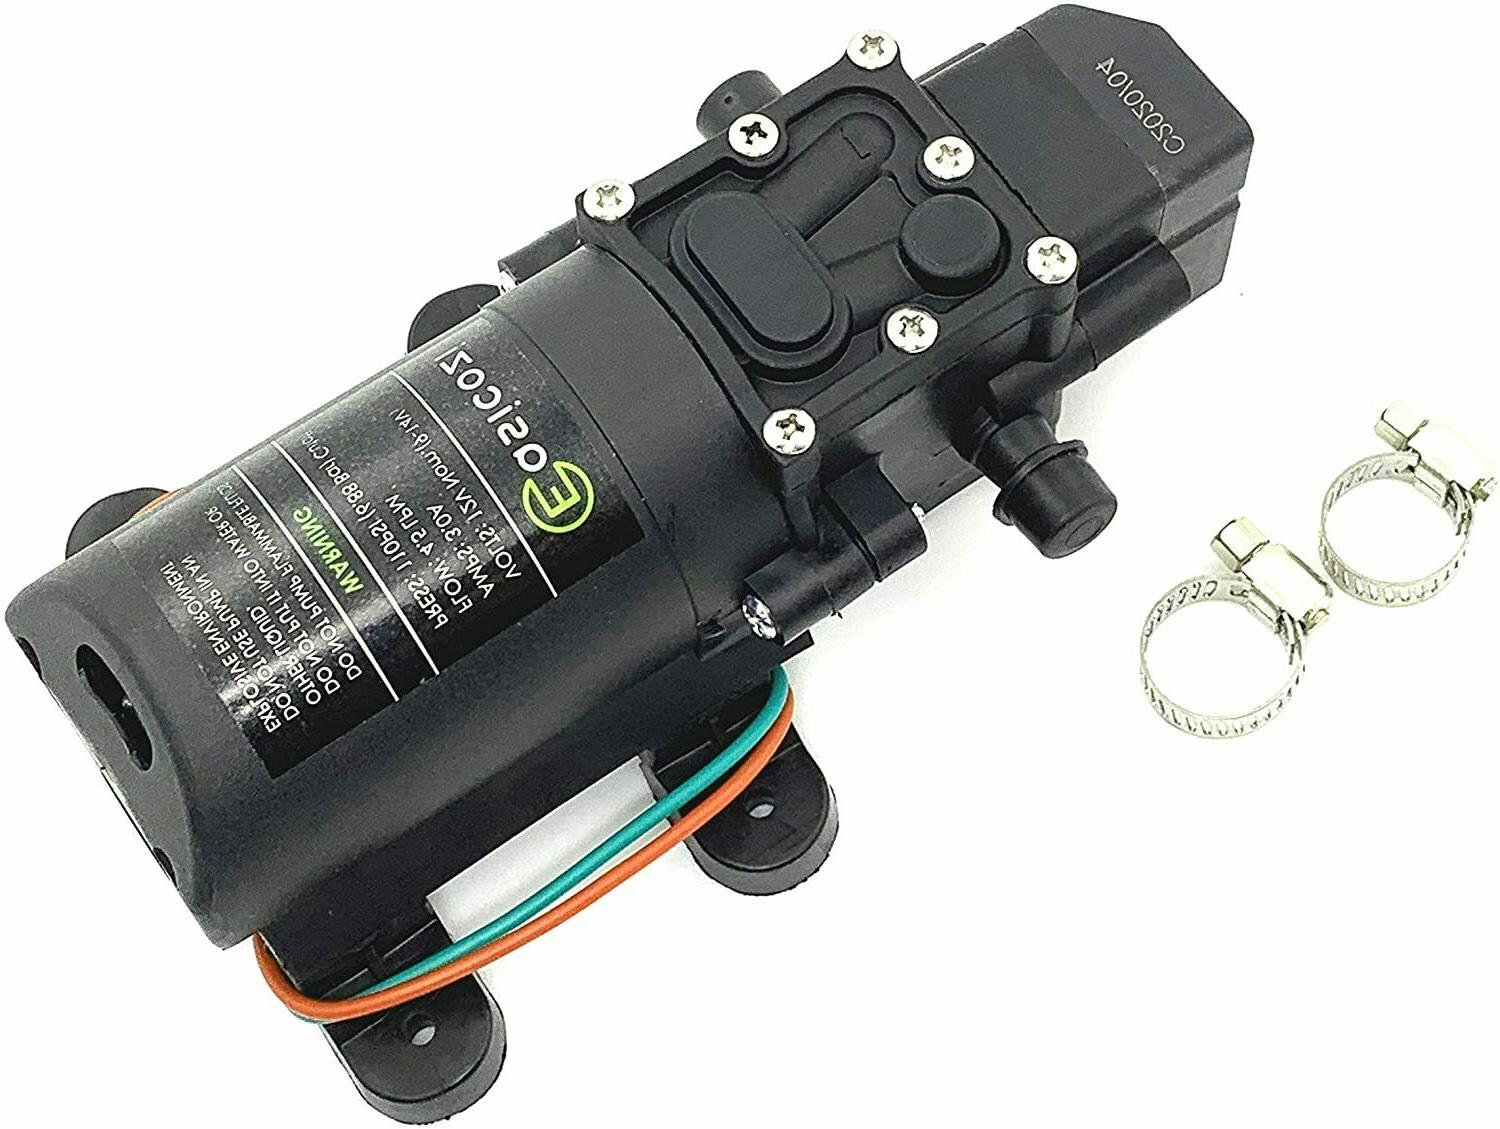 12v dc fresh water pump with 2